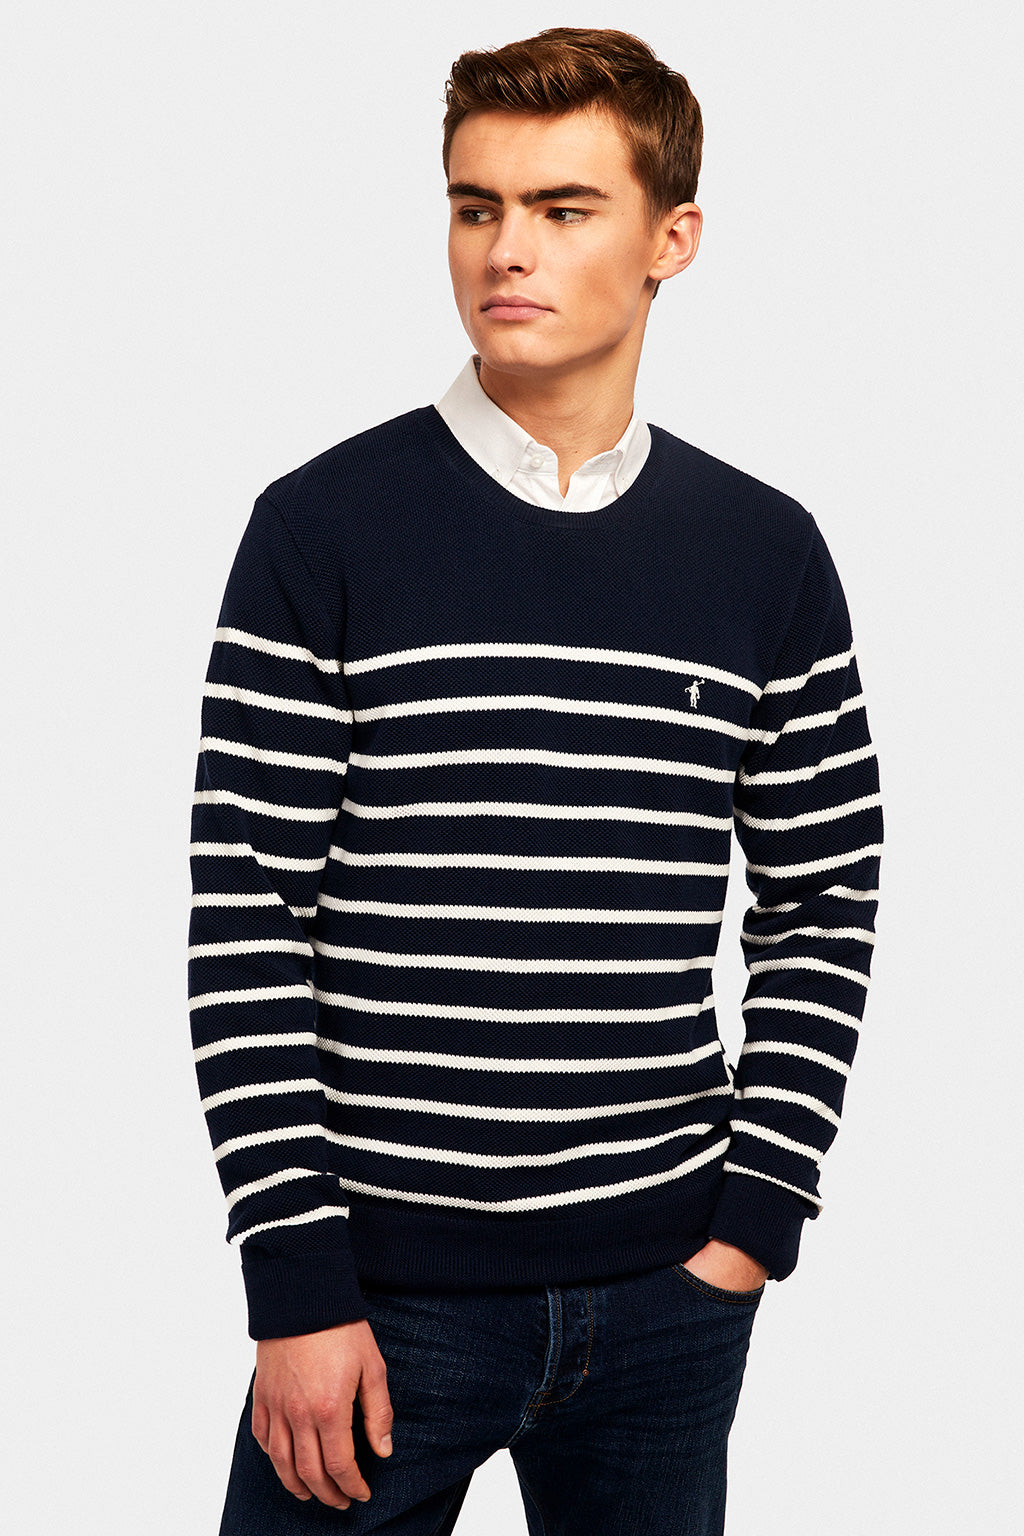 Jersey Navy Stripes Jersey Marino-Crudo